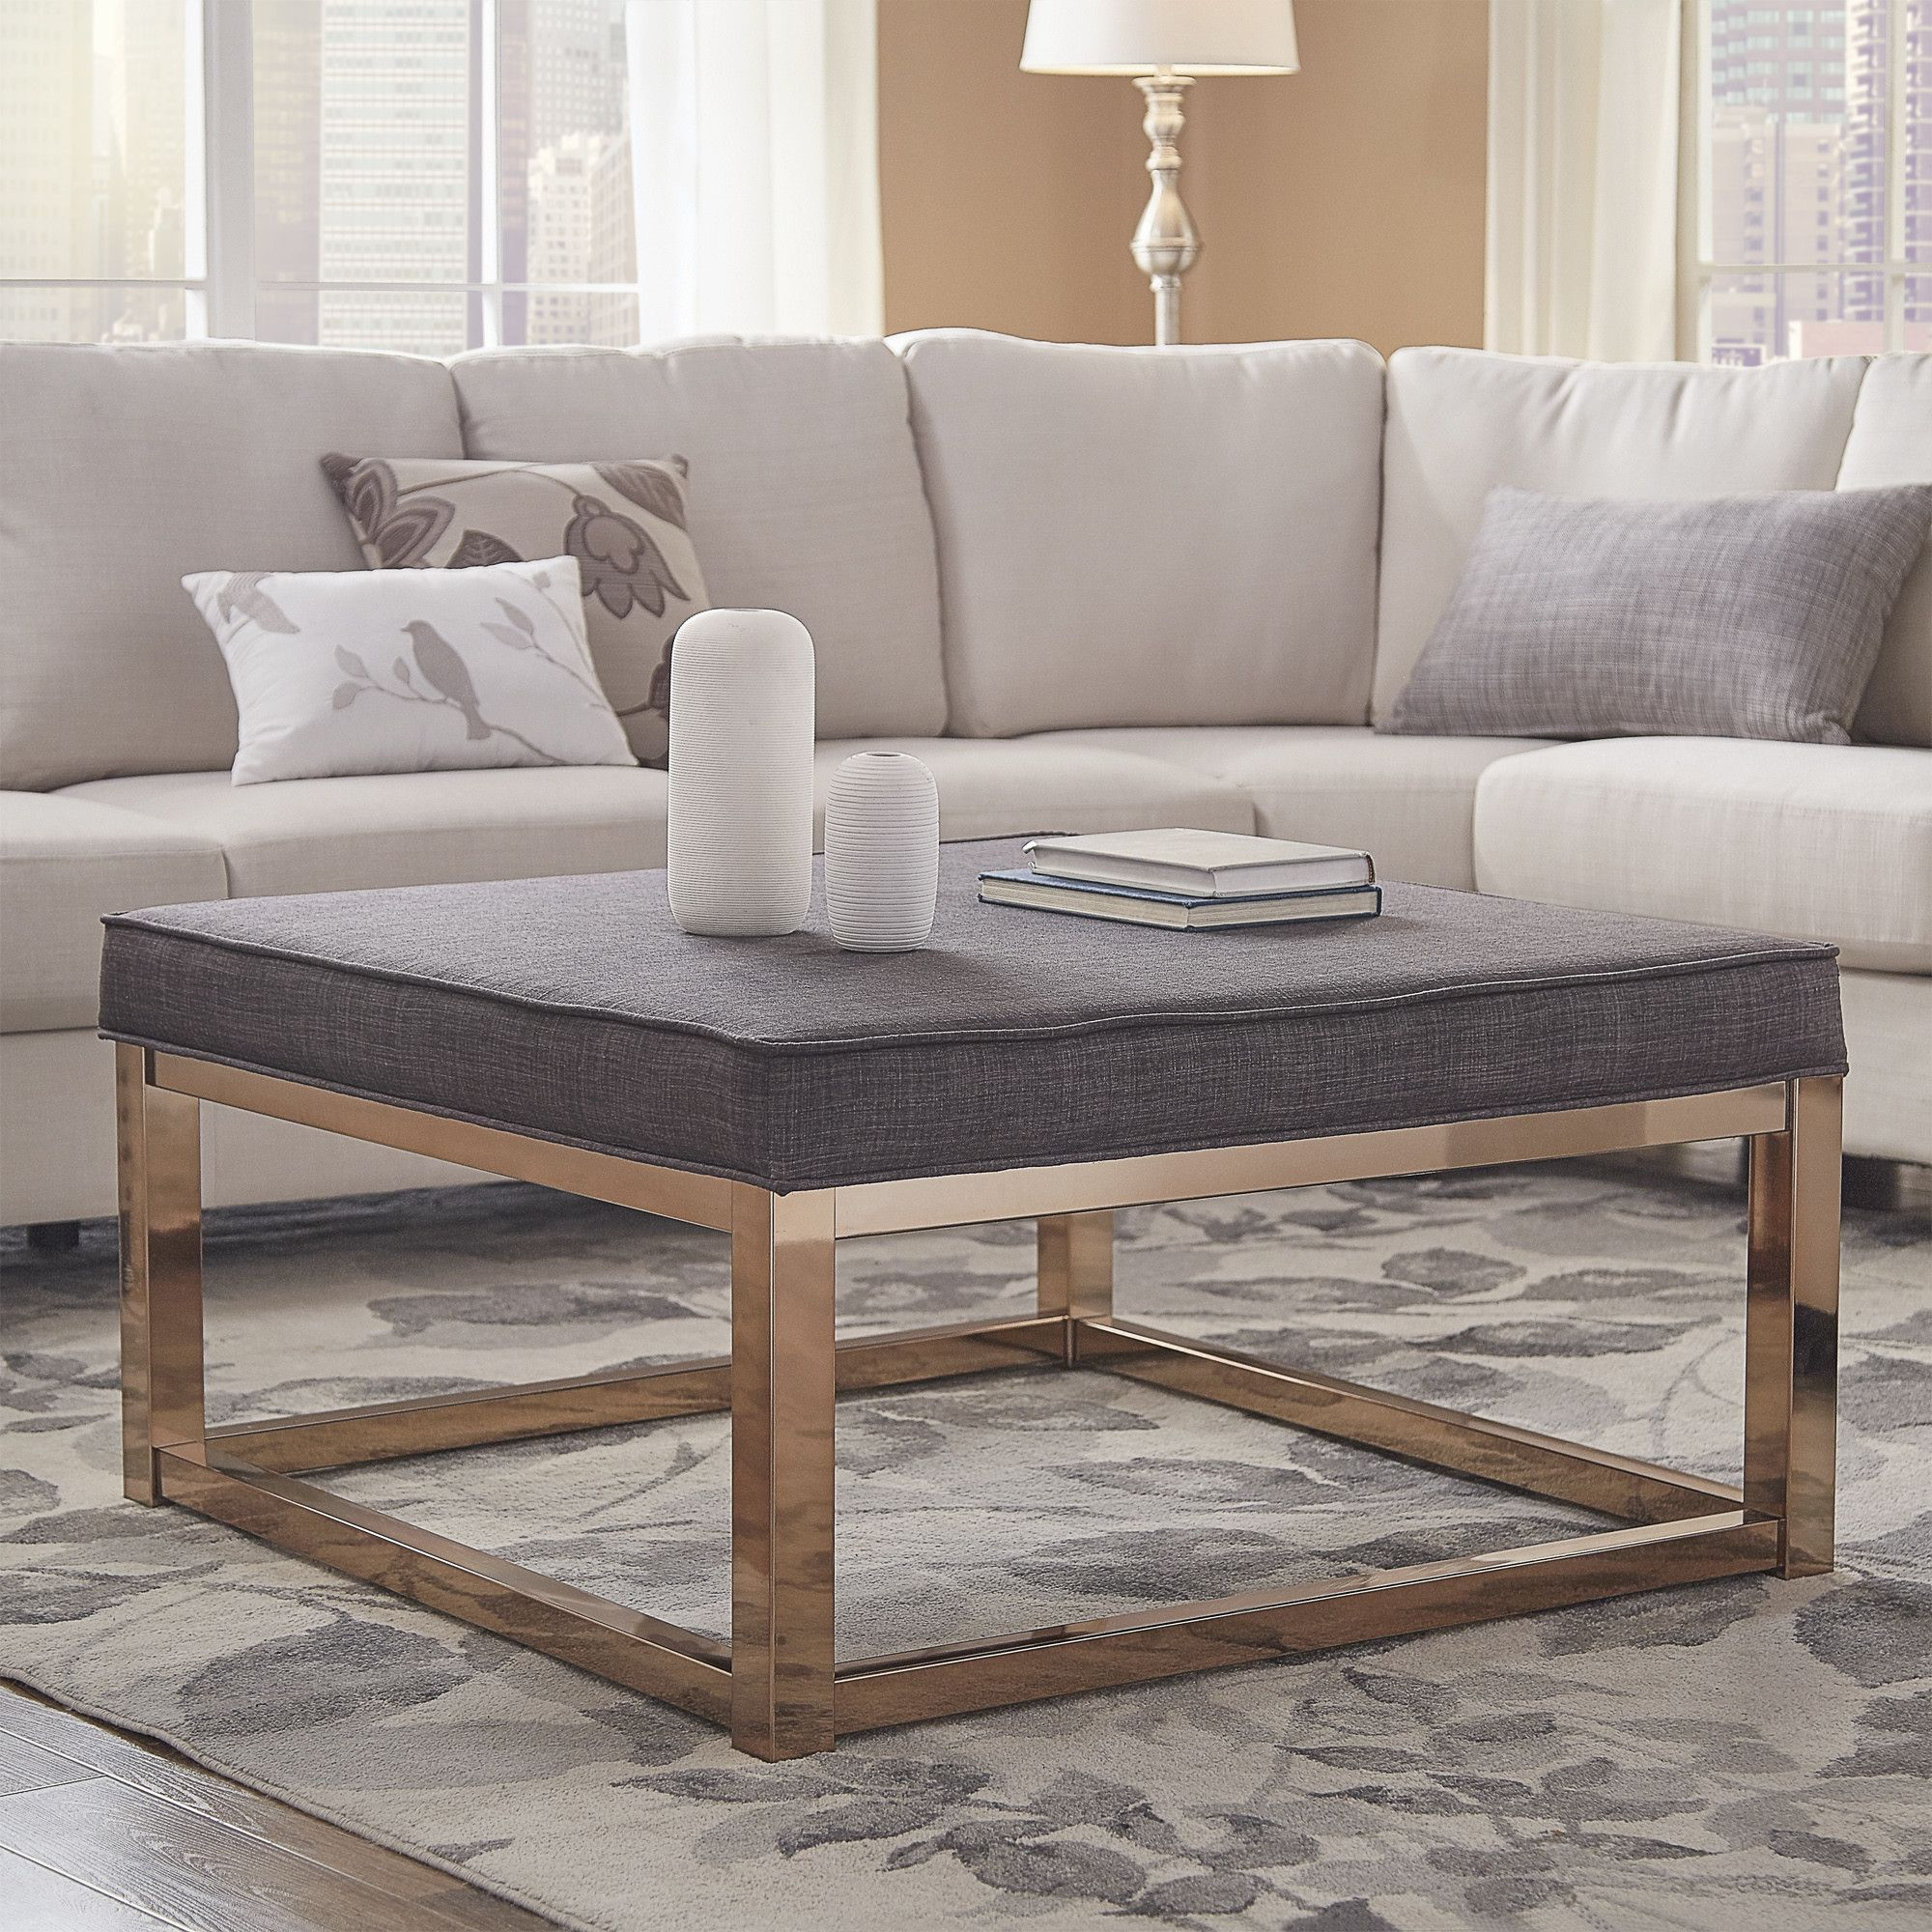 40++ Upholstered ottoman coffee table leather ideas